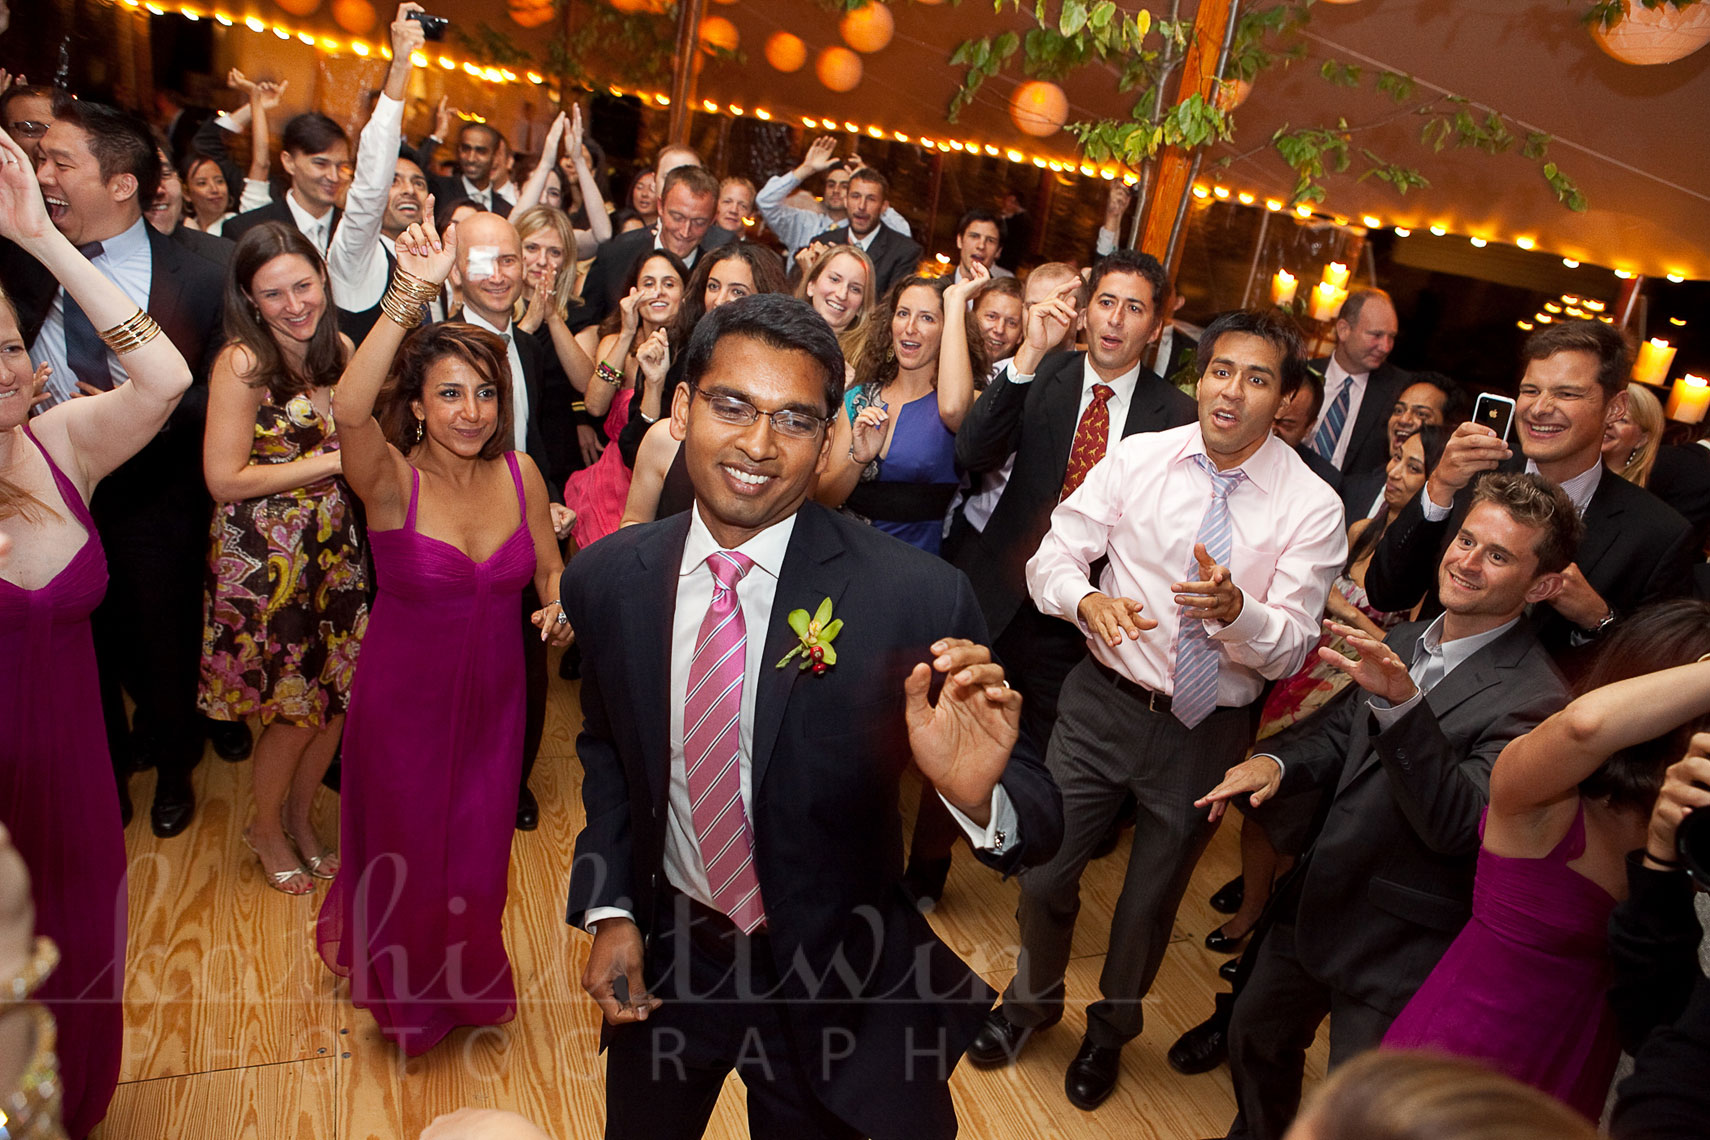 Kathi_Littwin_Photography_Mashomack_wedding_3093